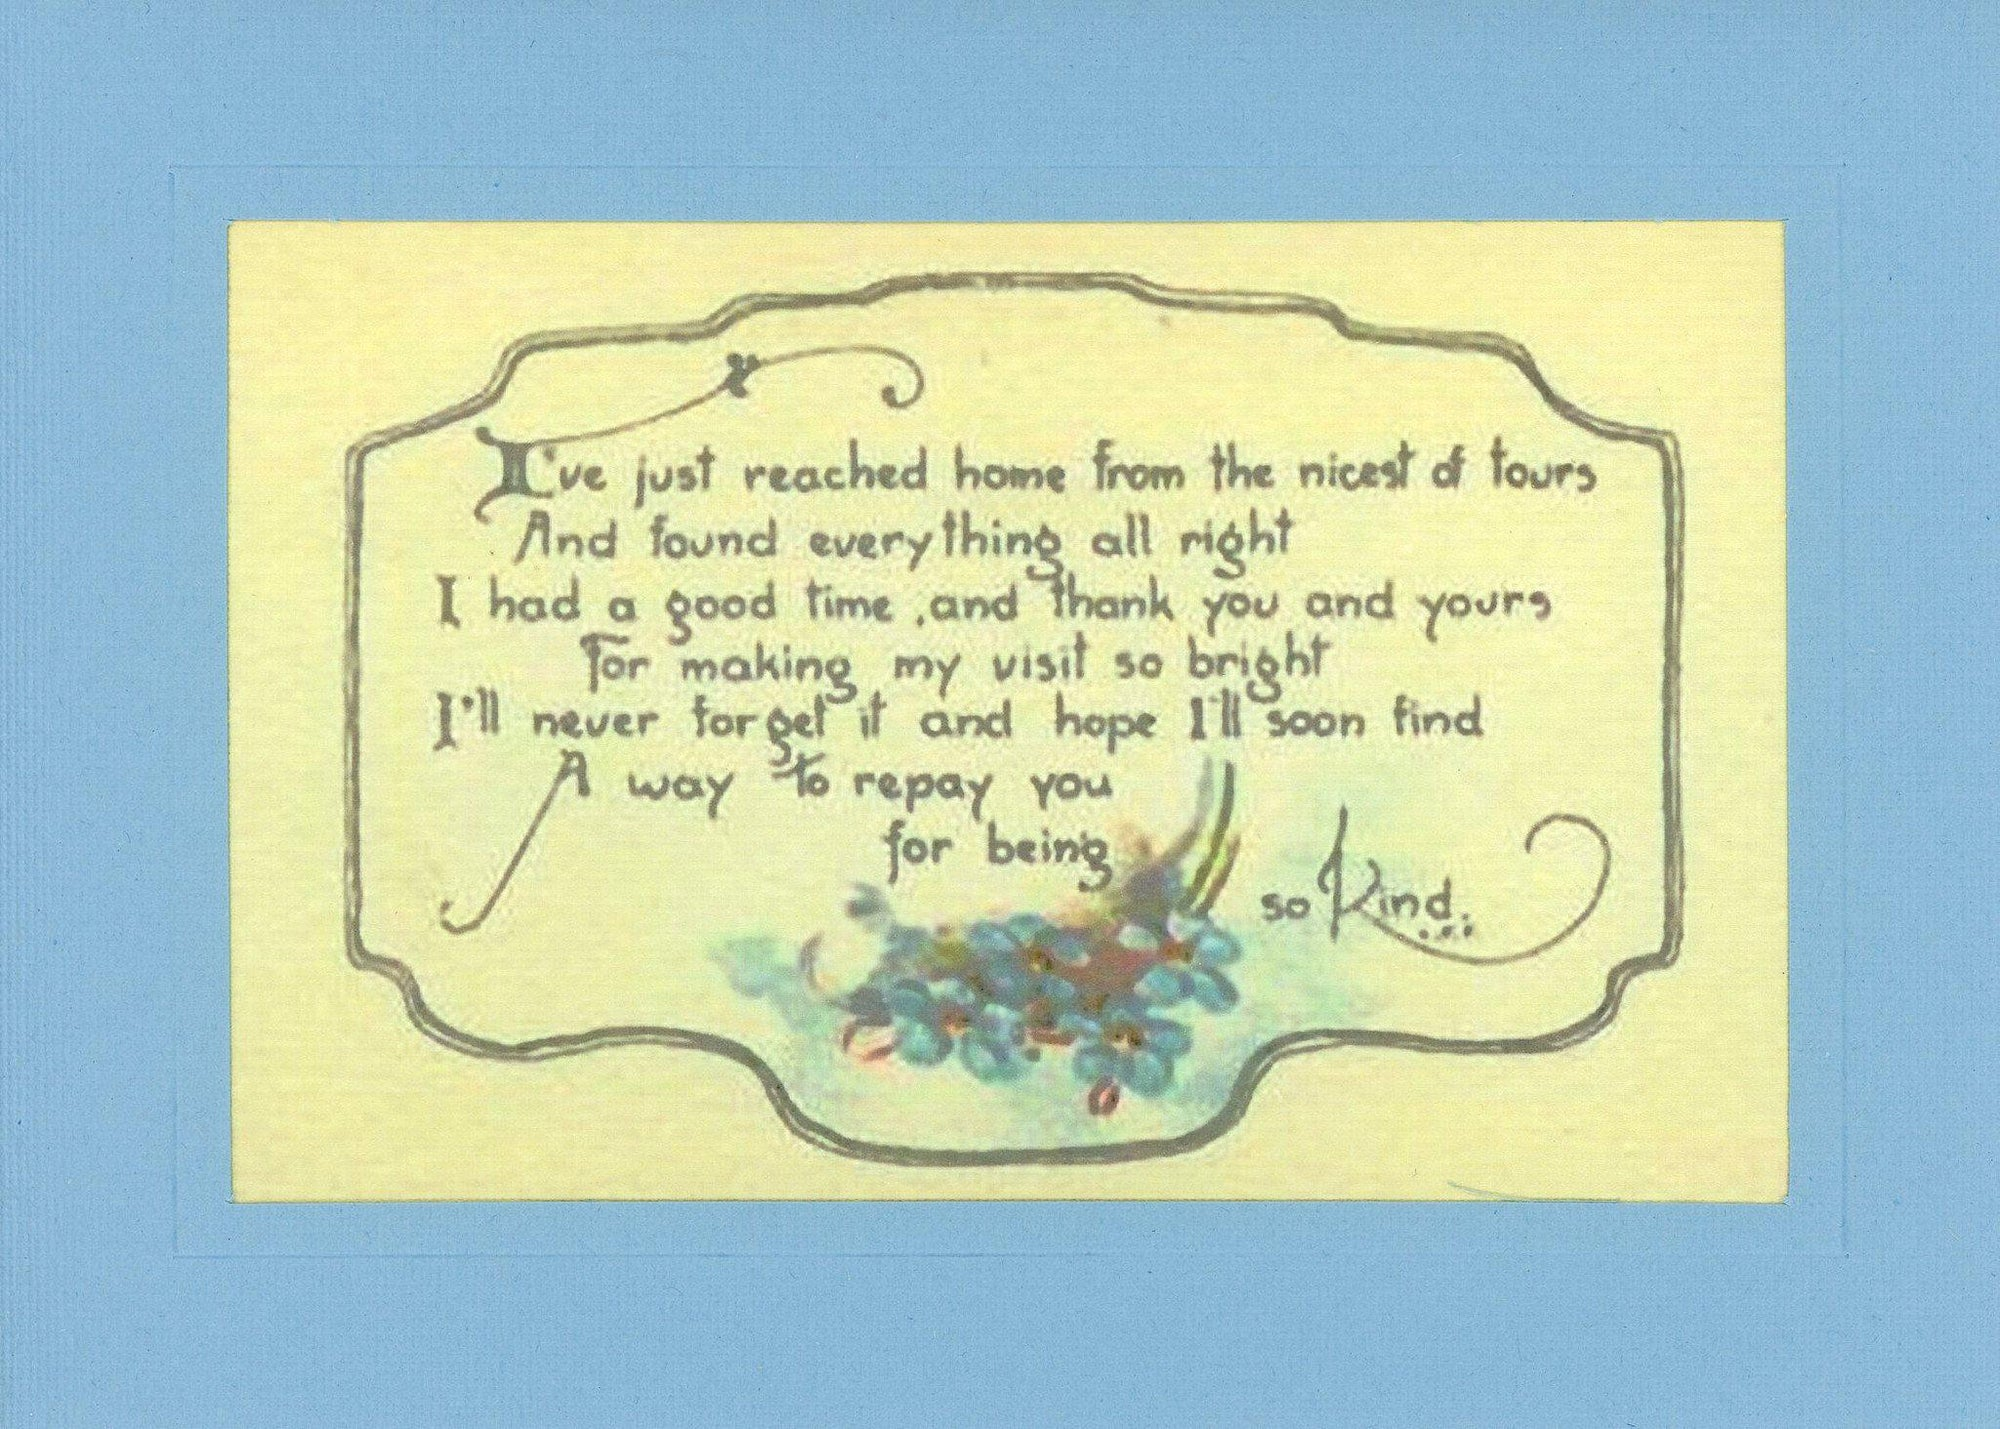 Kindness Thank You-Greetings from the Past-Plymouth Cards